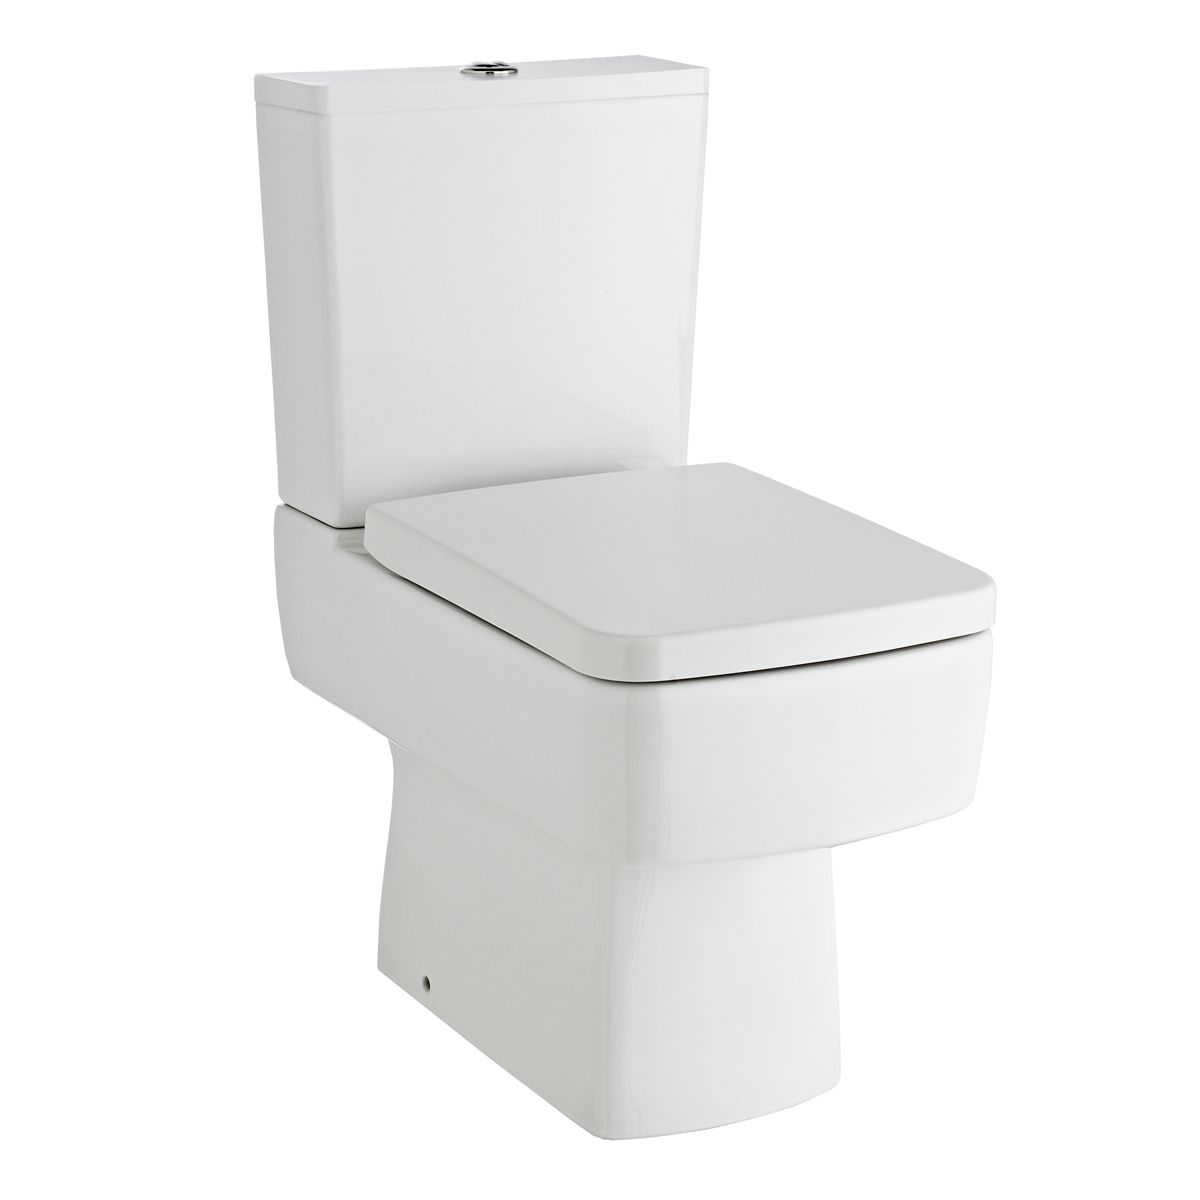 Nuie Bliss Close Coupled Toilet with Soft Close Seat